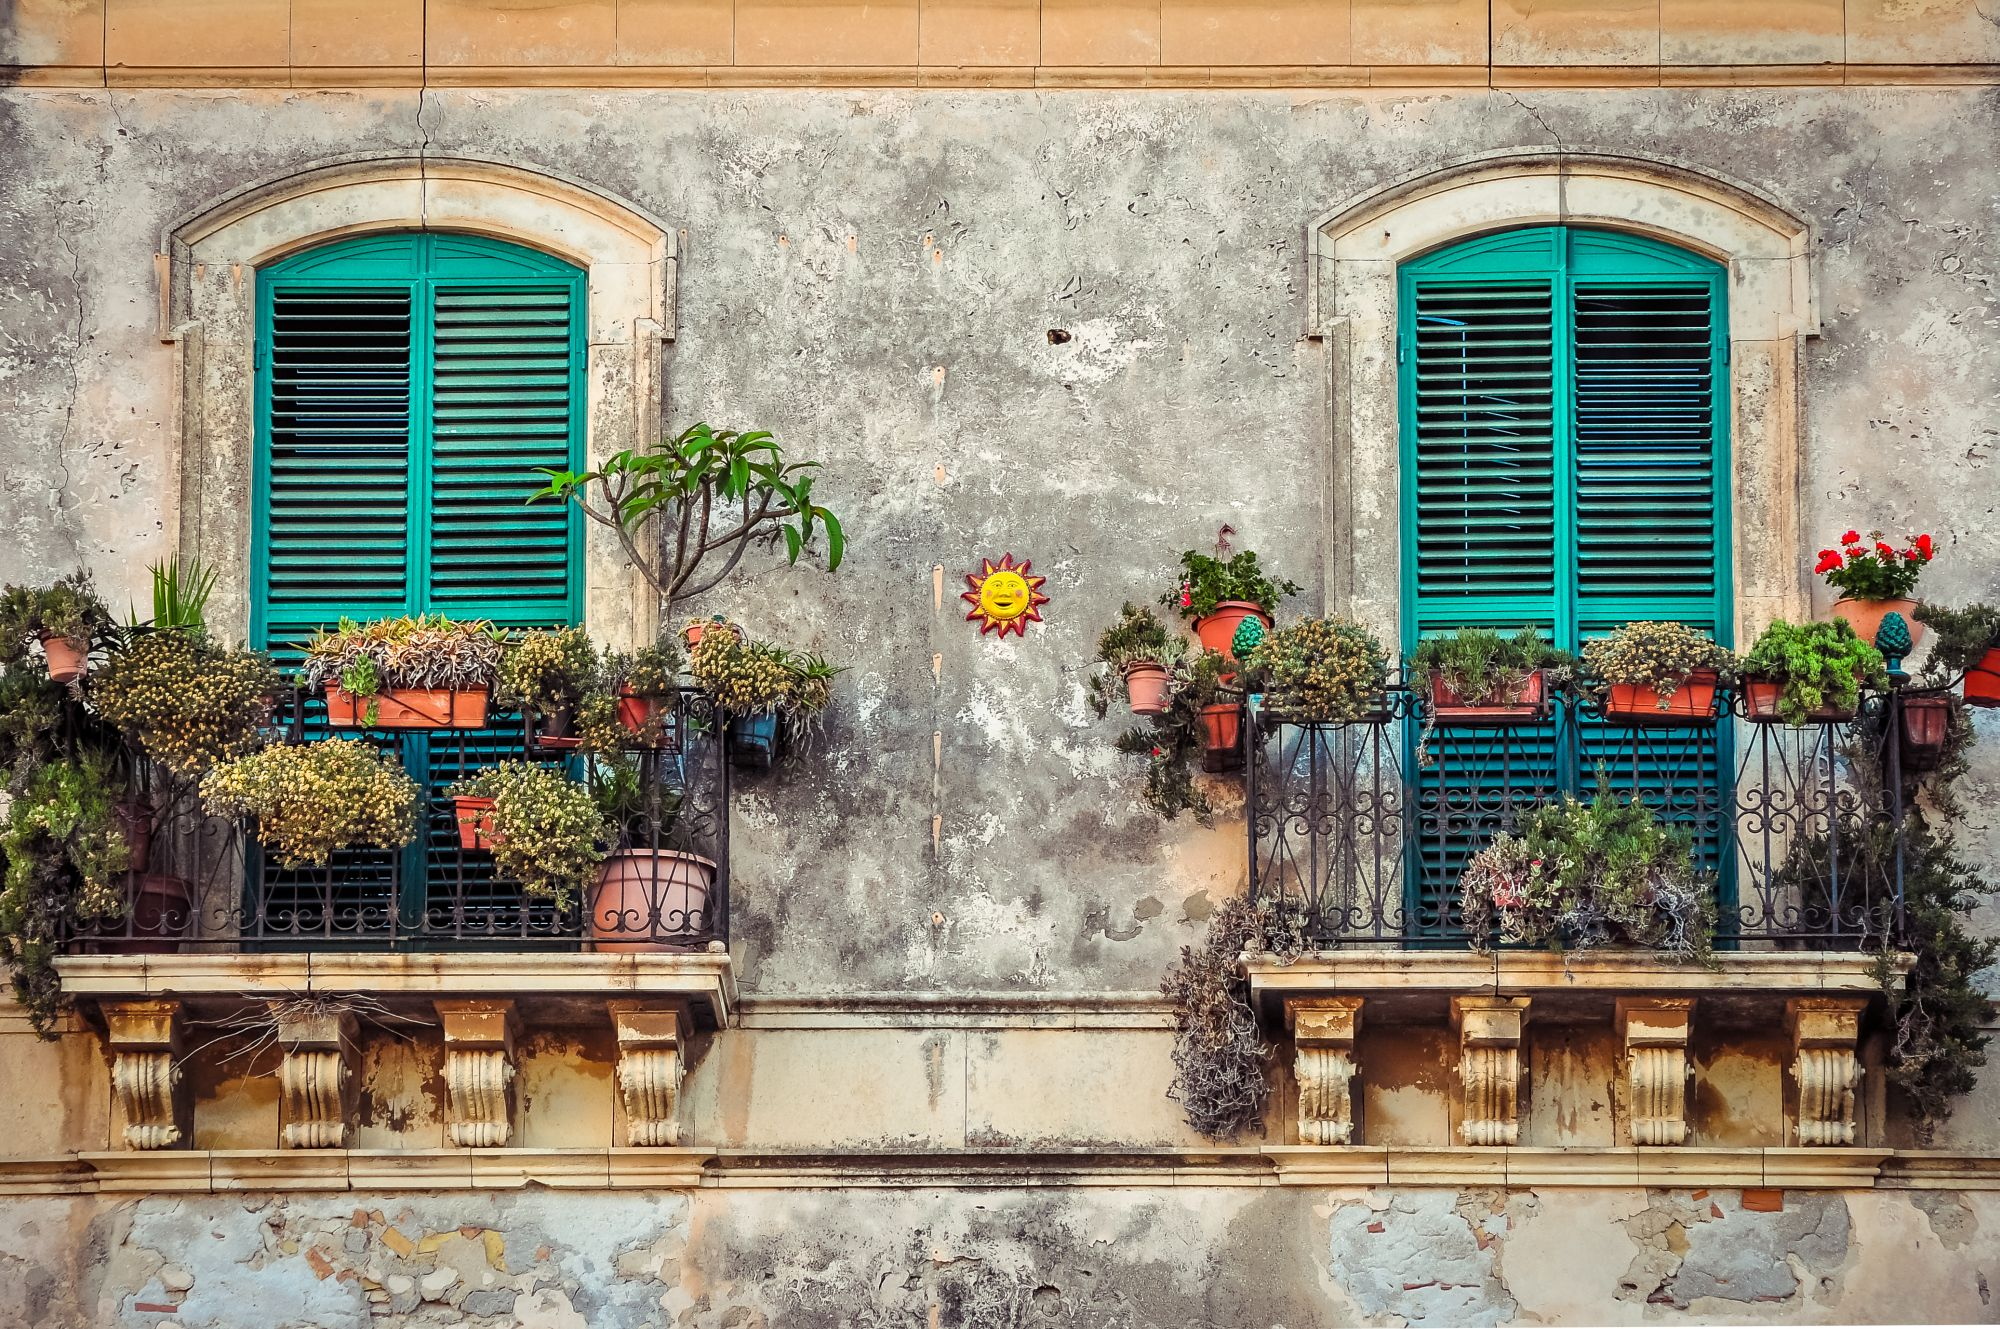 Beautiful vintage balcony with colorful flowers and wooden doors, Mediterranean style